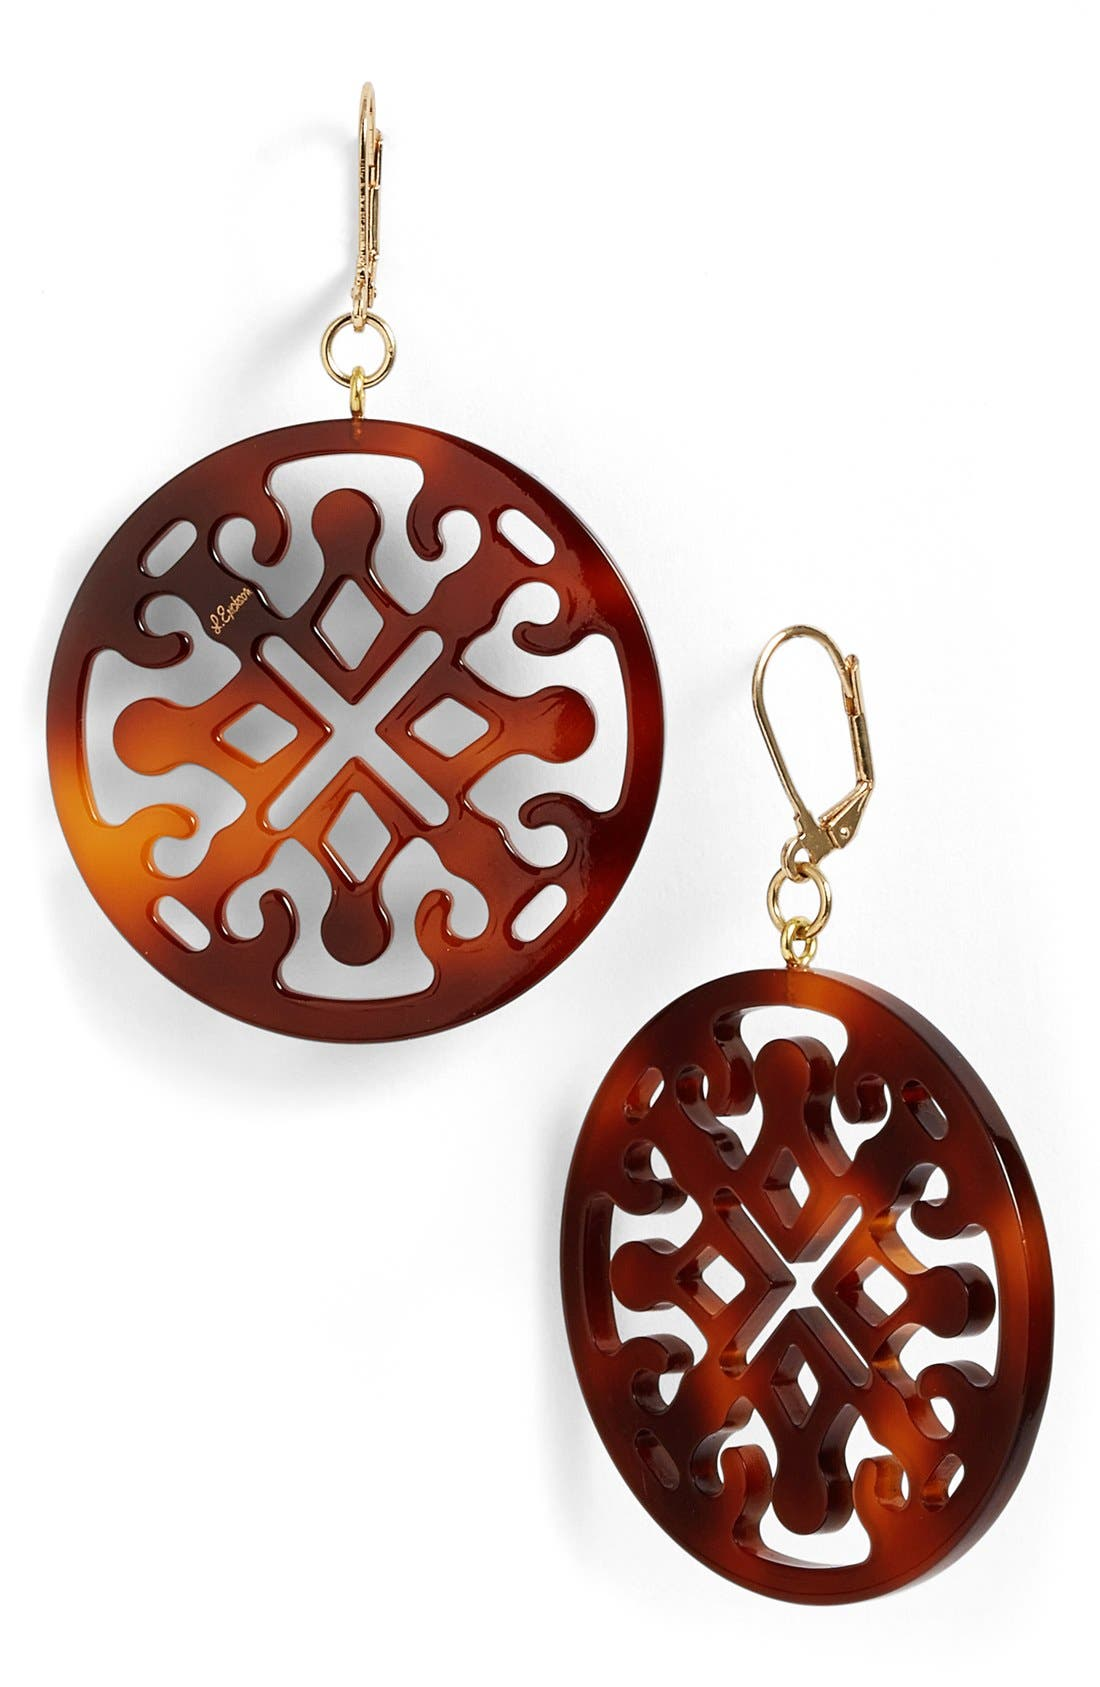 Medallion Filigree Drop Earrings,                         Main,                         color, Tortoise